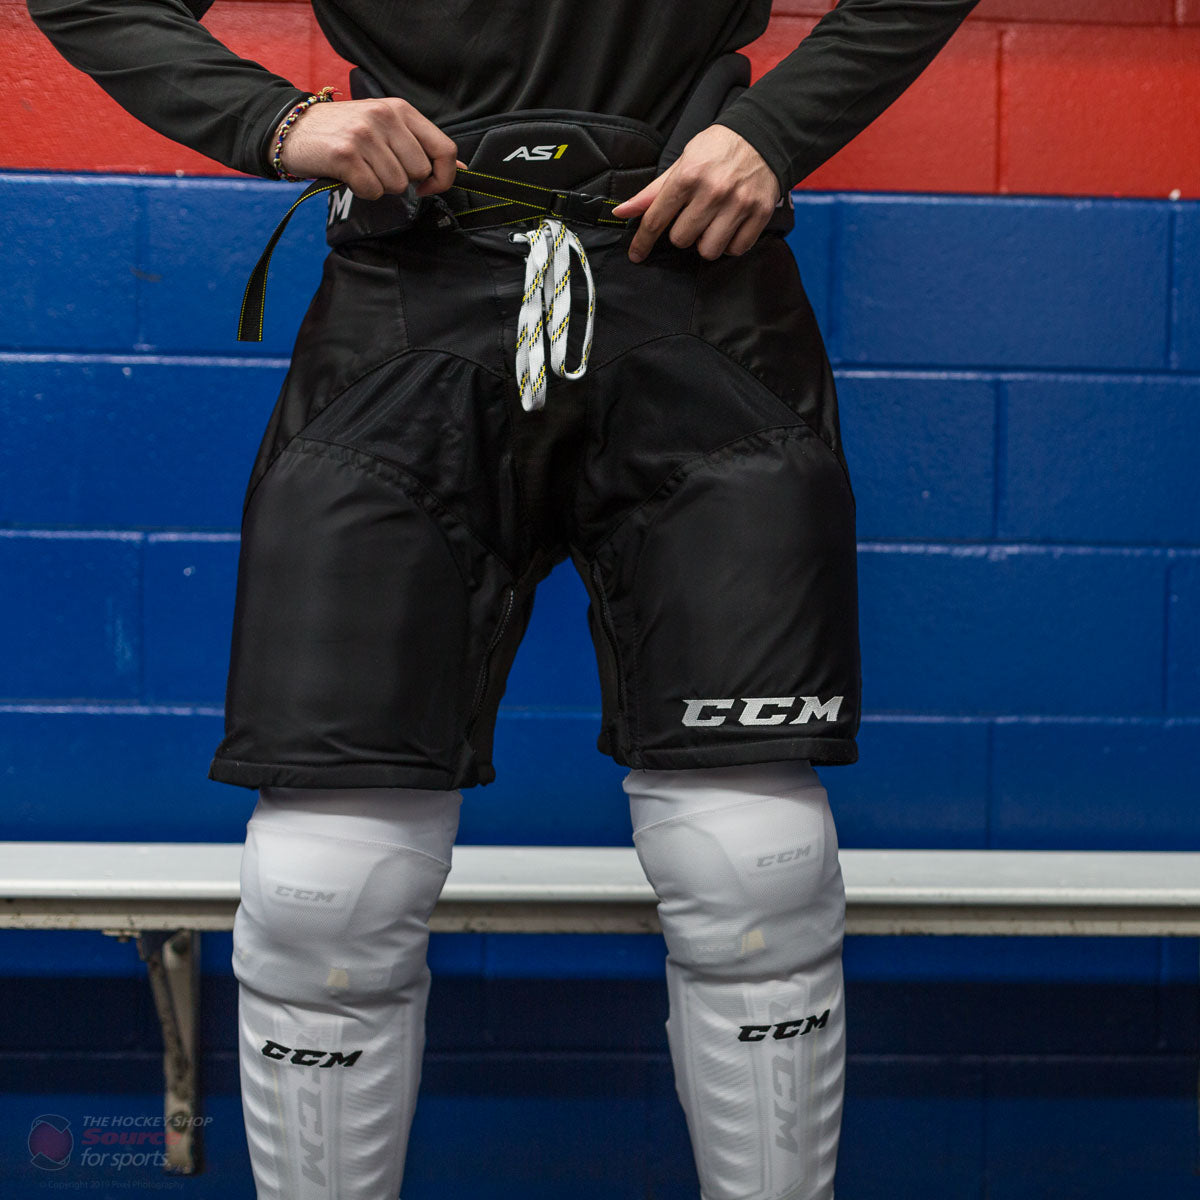 CCM Super Tacks AS1 Protective Review – The Hockey Shop